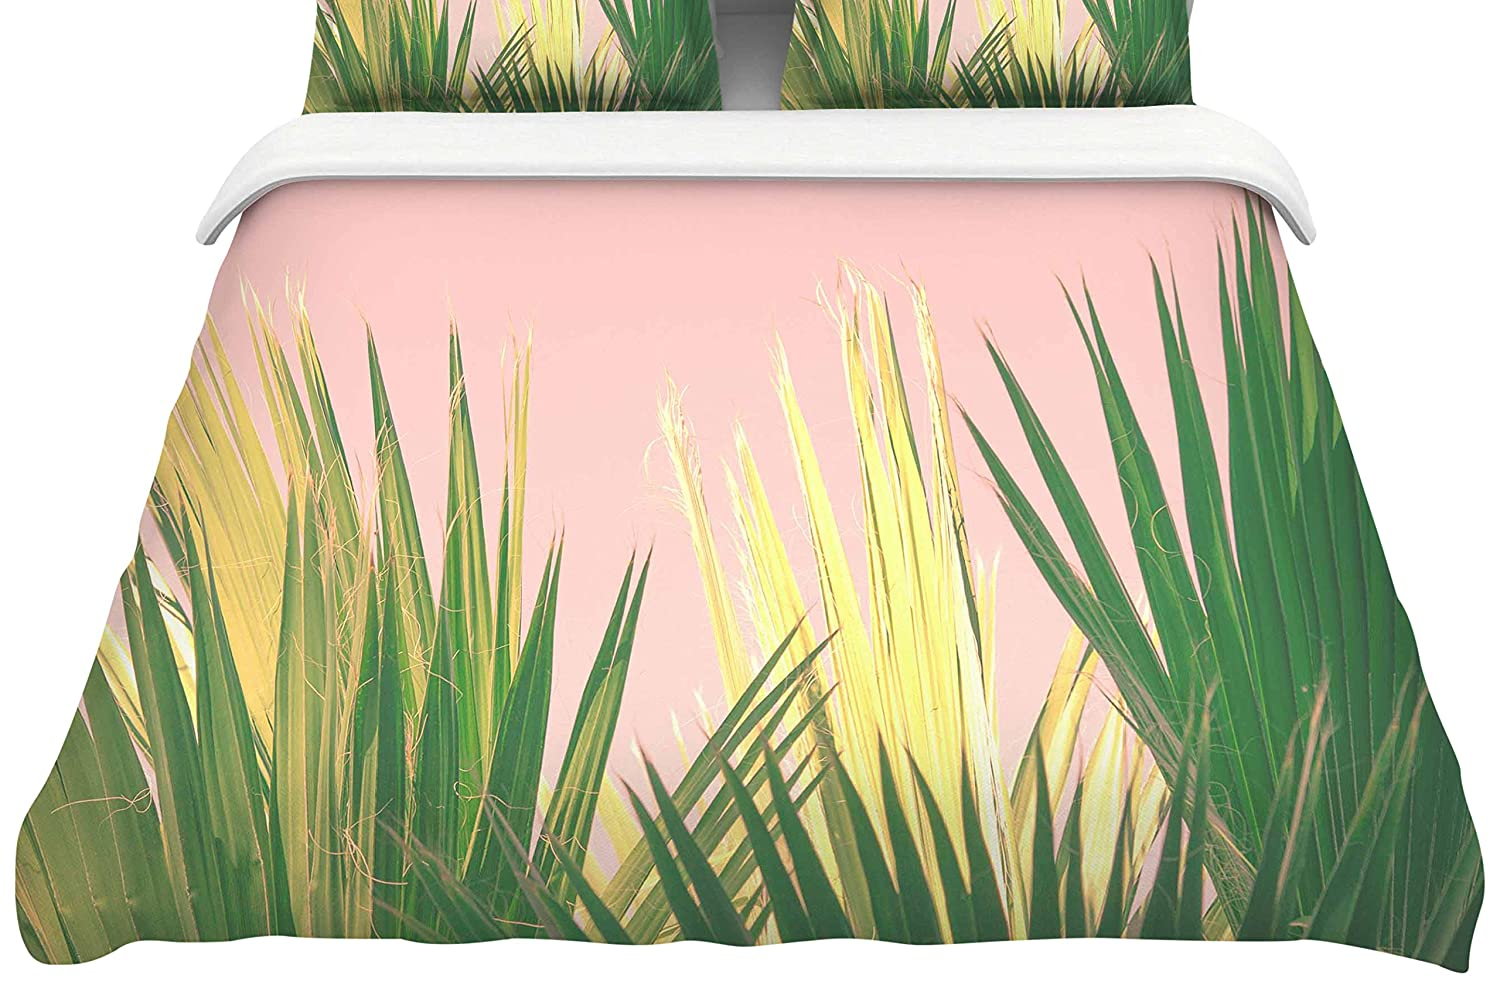 Kess InHouse Ann Barnes Neon Jungle II Pastel Green Photography Twin Featherweight Duvet Cover 68 x 88